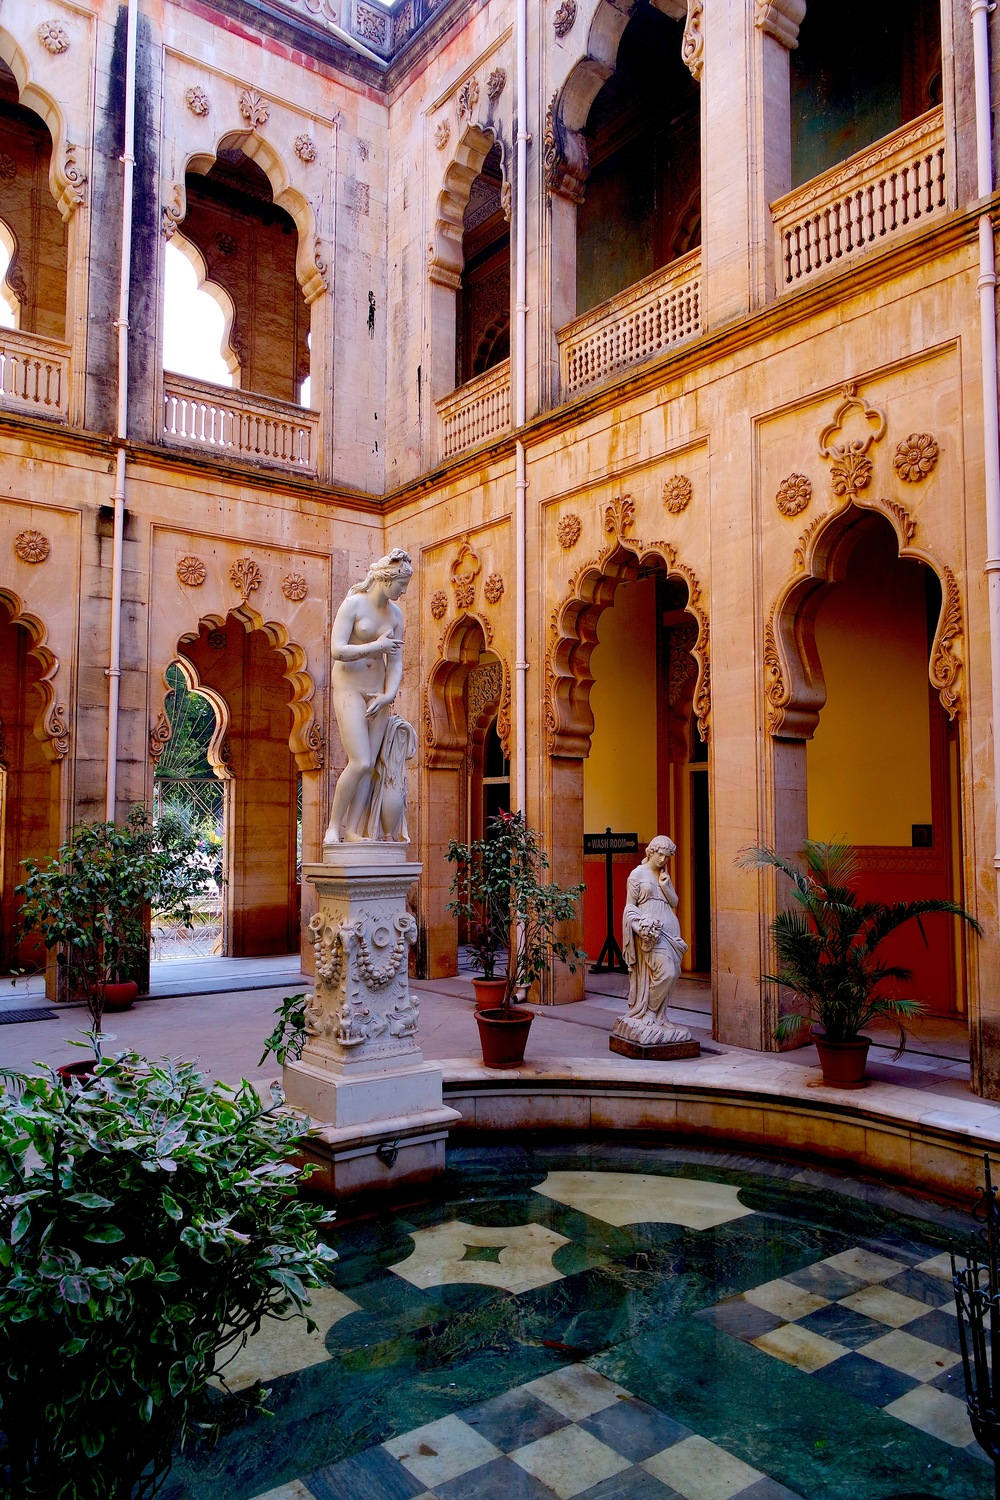 Gorgeous interior courtyard at Laxmi Vilas Palace in Vadodara, India